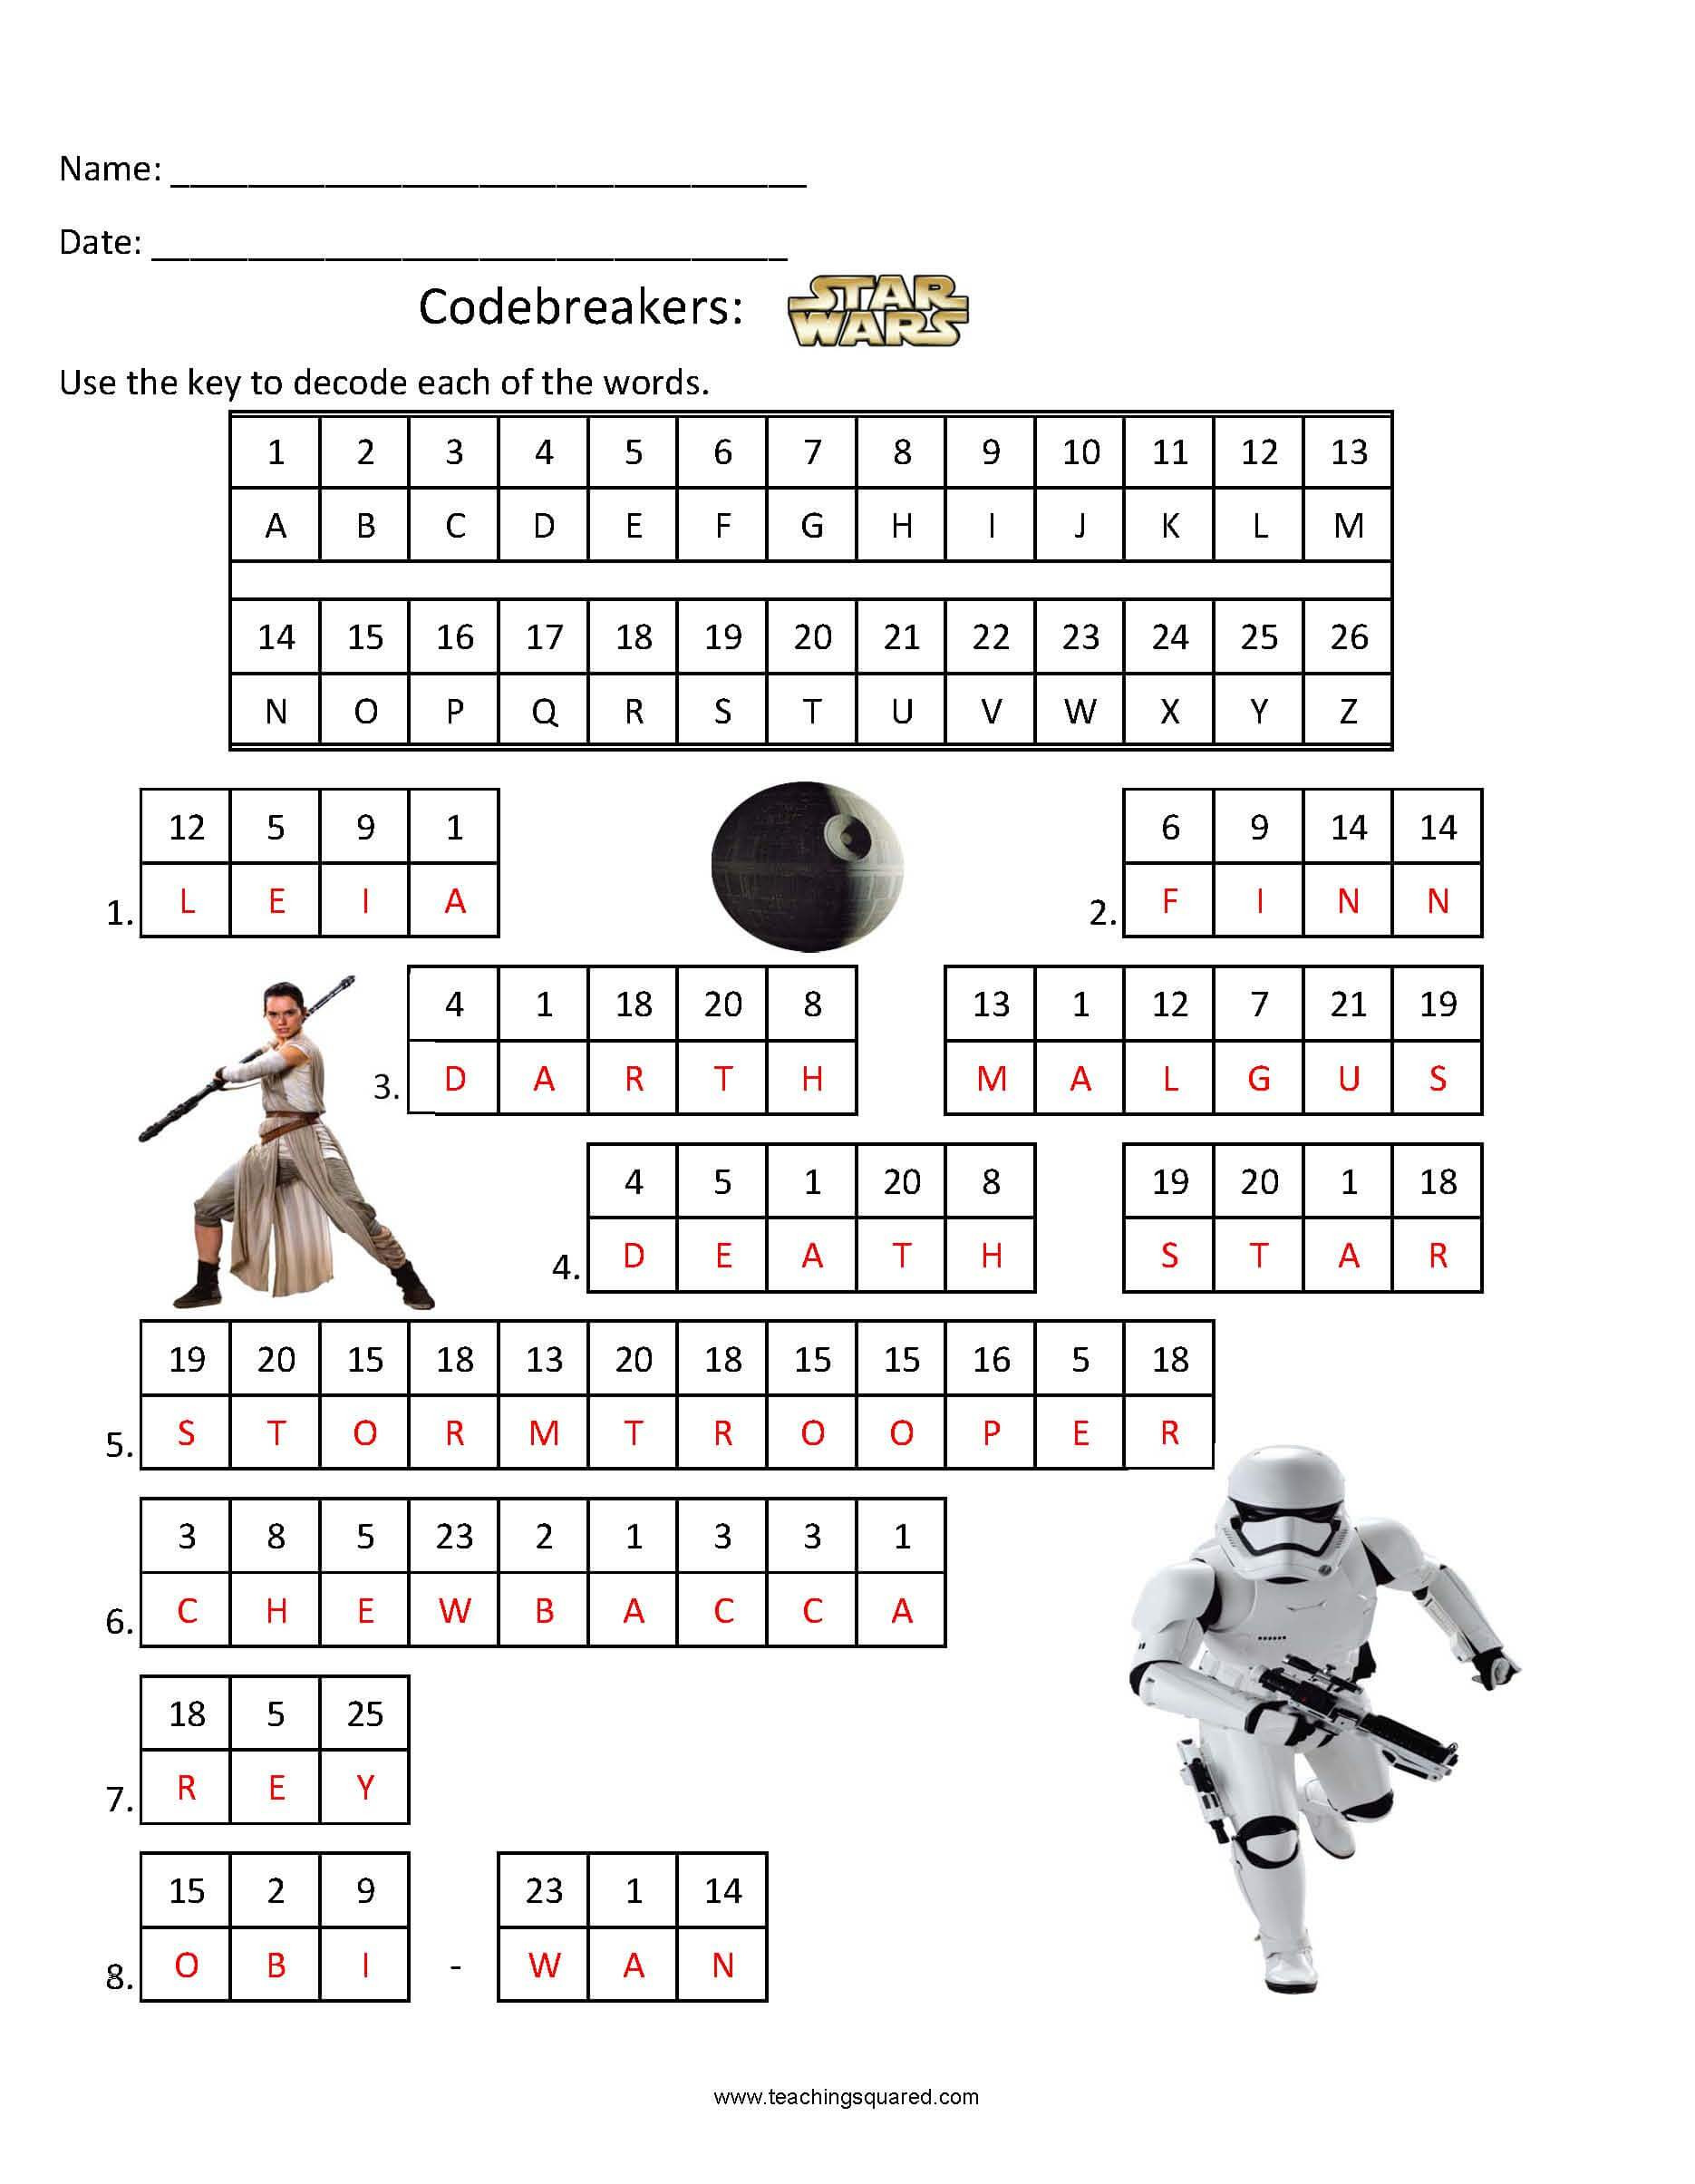 Star Wars Math Worksheets Codebreakers Star Wars 2 Teaching Squared